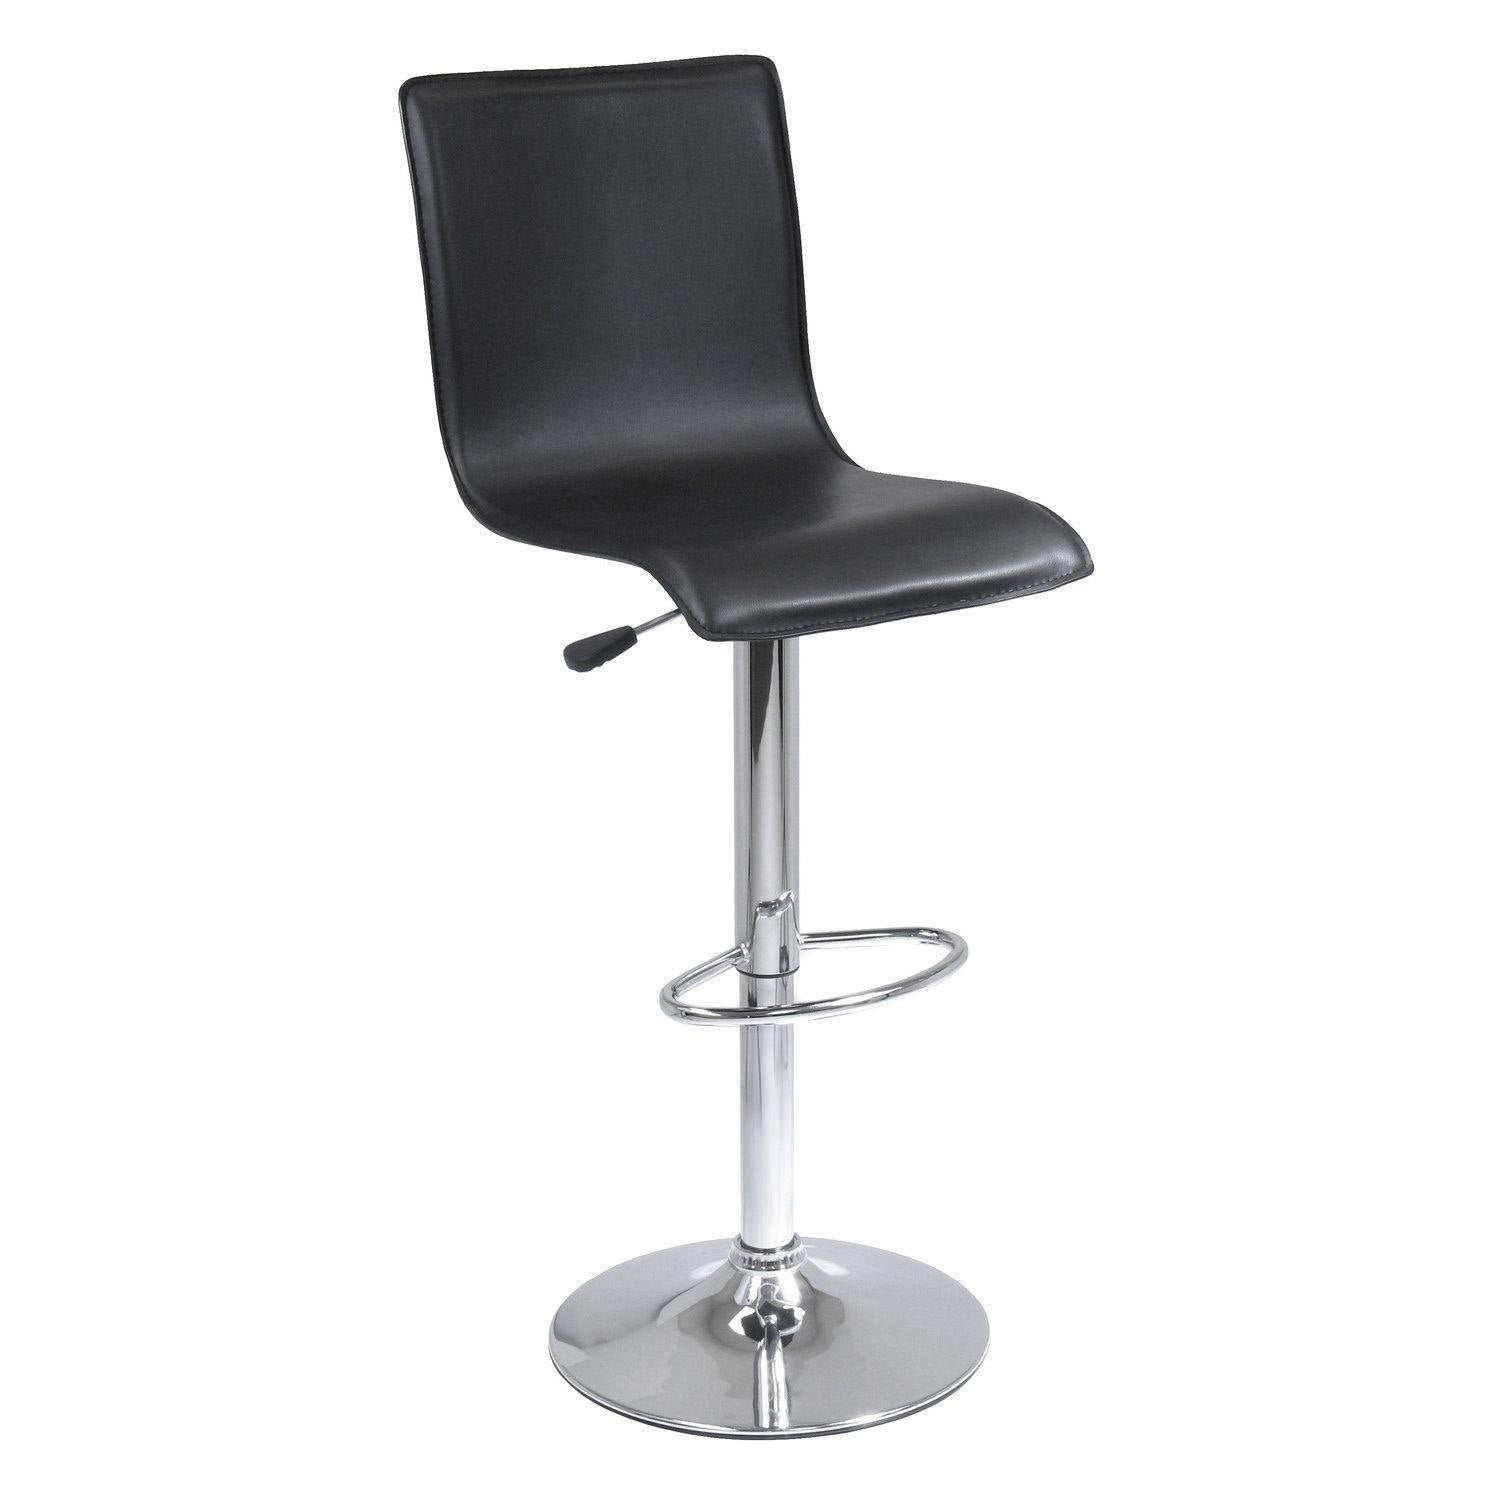 Spectrum High-back Ajustable Swivel Stool, Black & Chrome - My USA Furniture